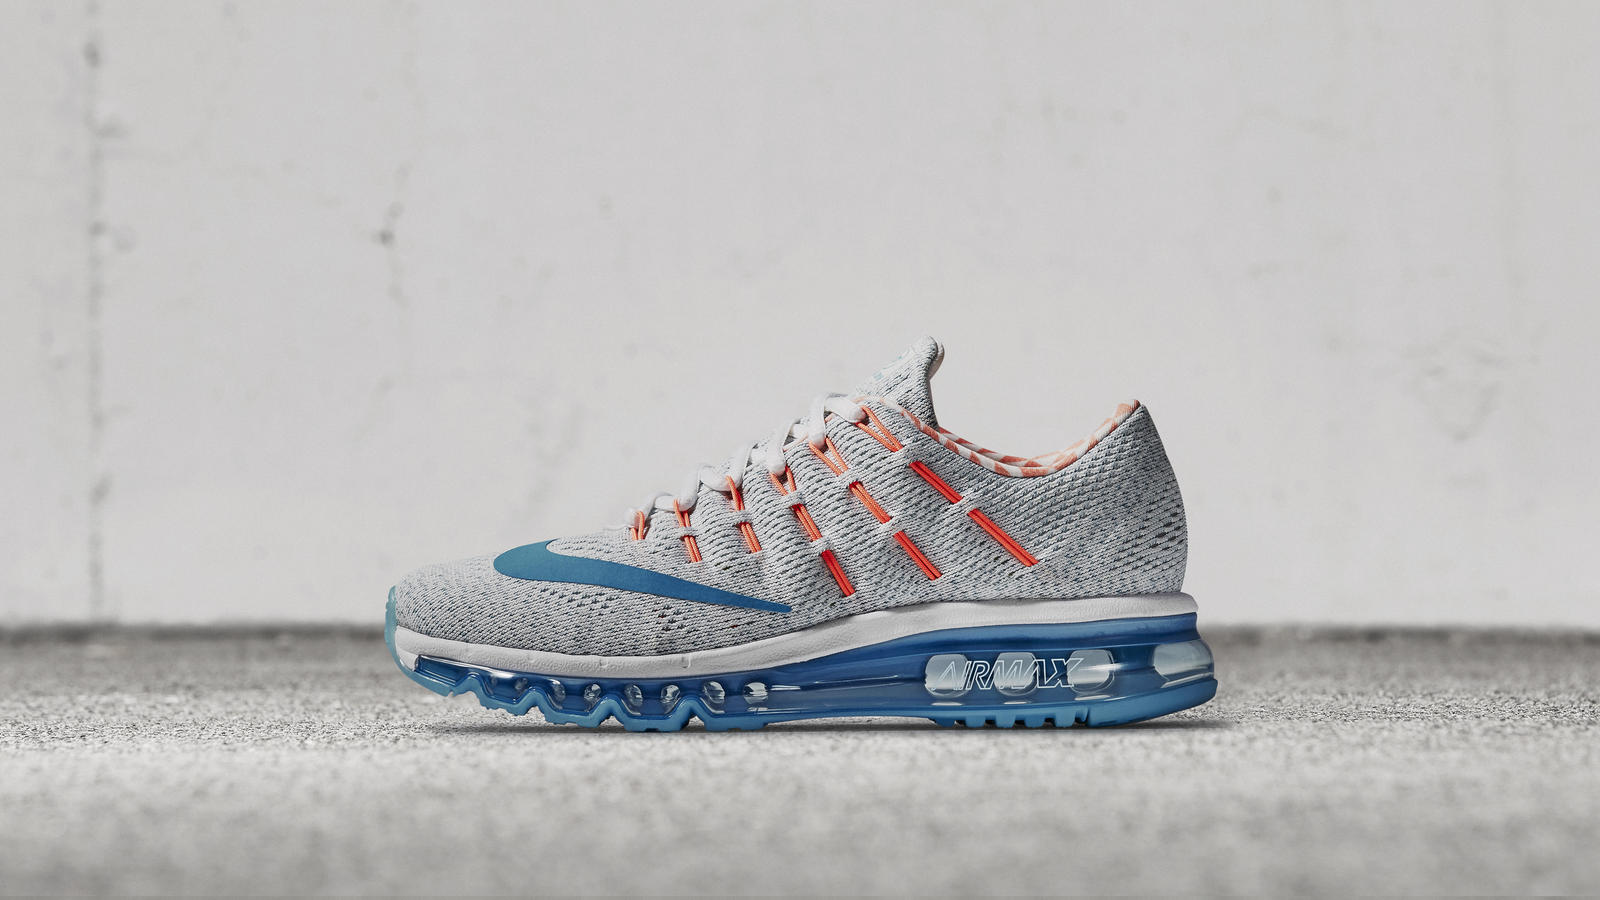 Nike news sneaker feed n7 air max wht flyknit 2626 hd 1600